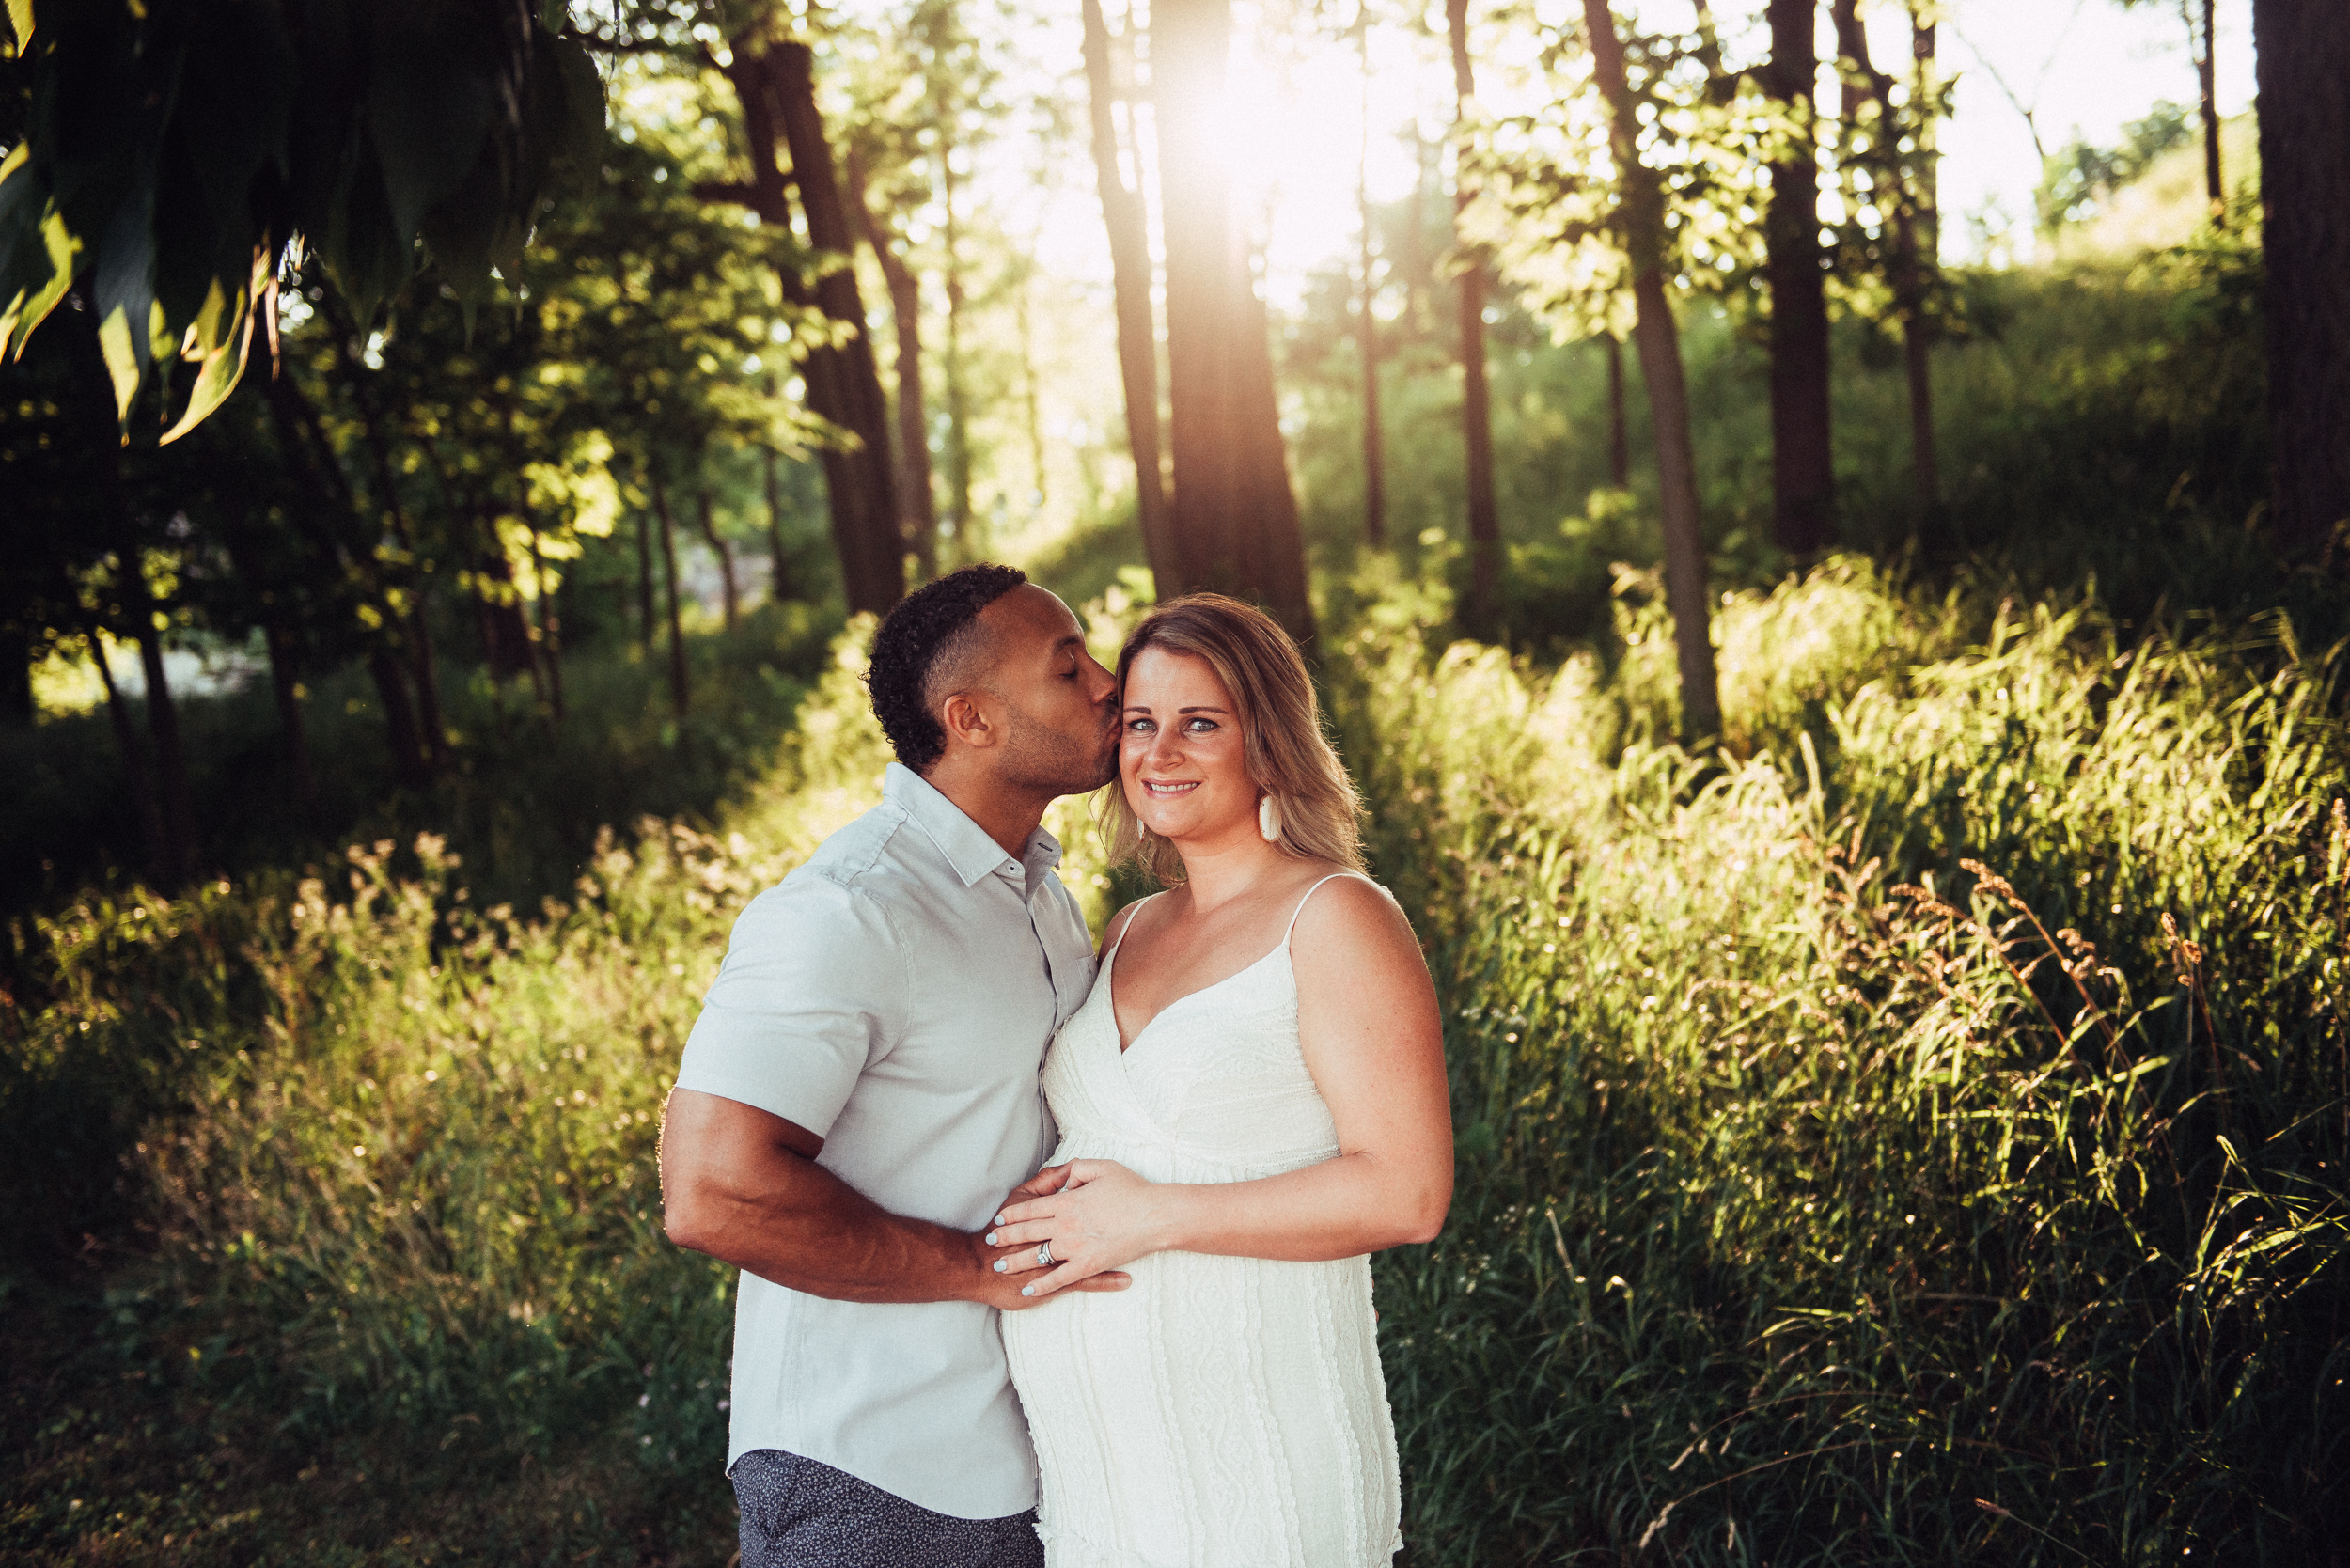 indianapolis-maternity-session-10.jpg